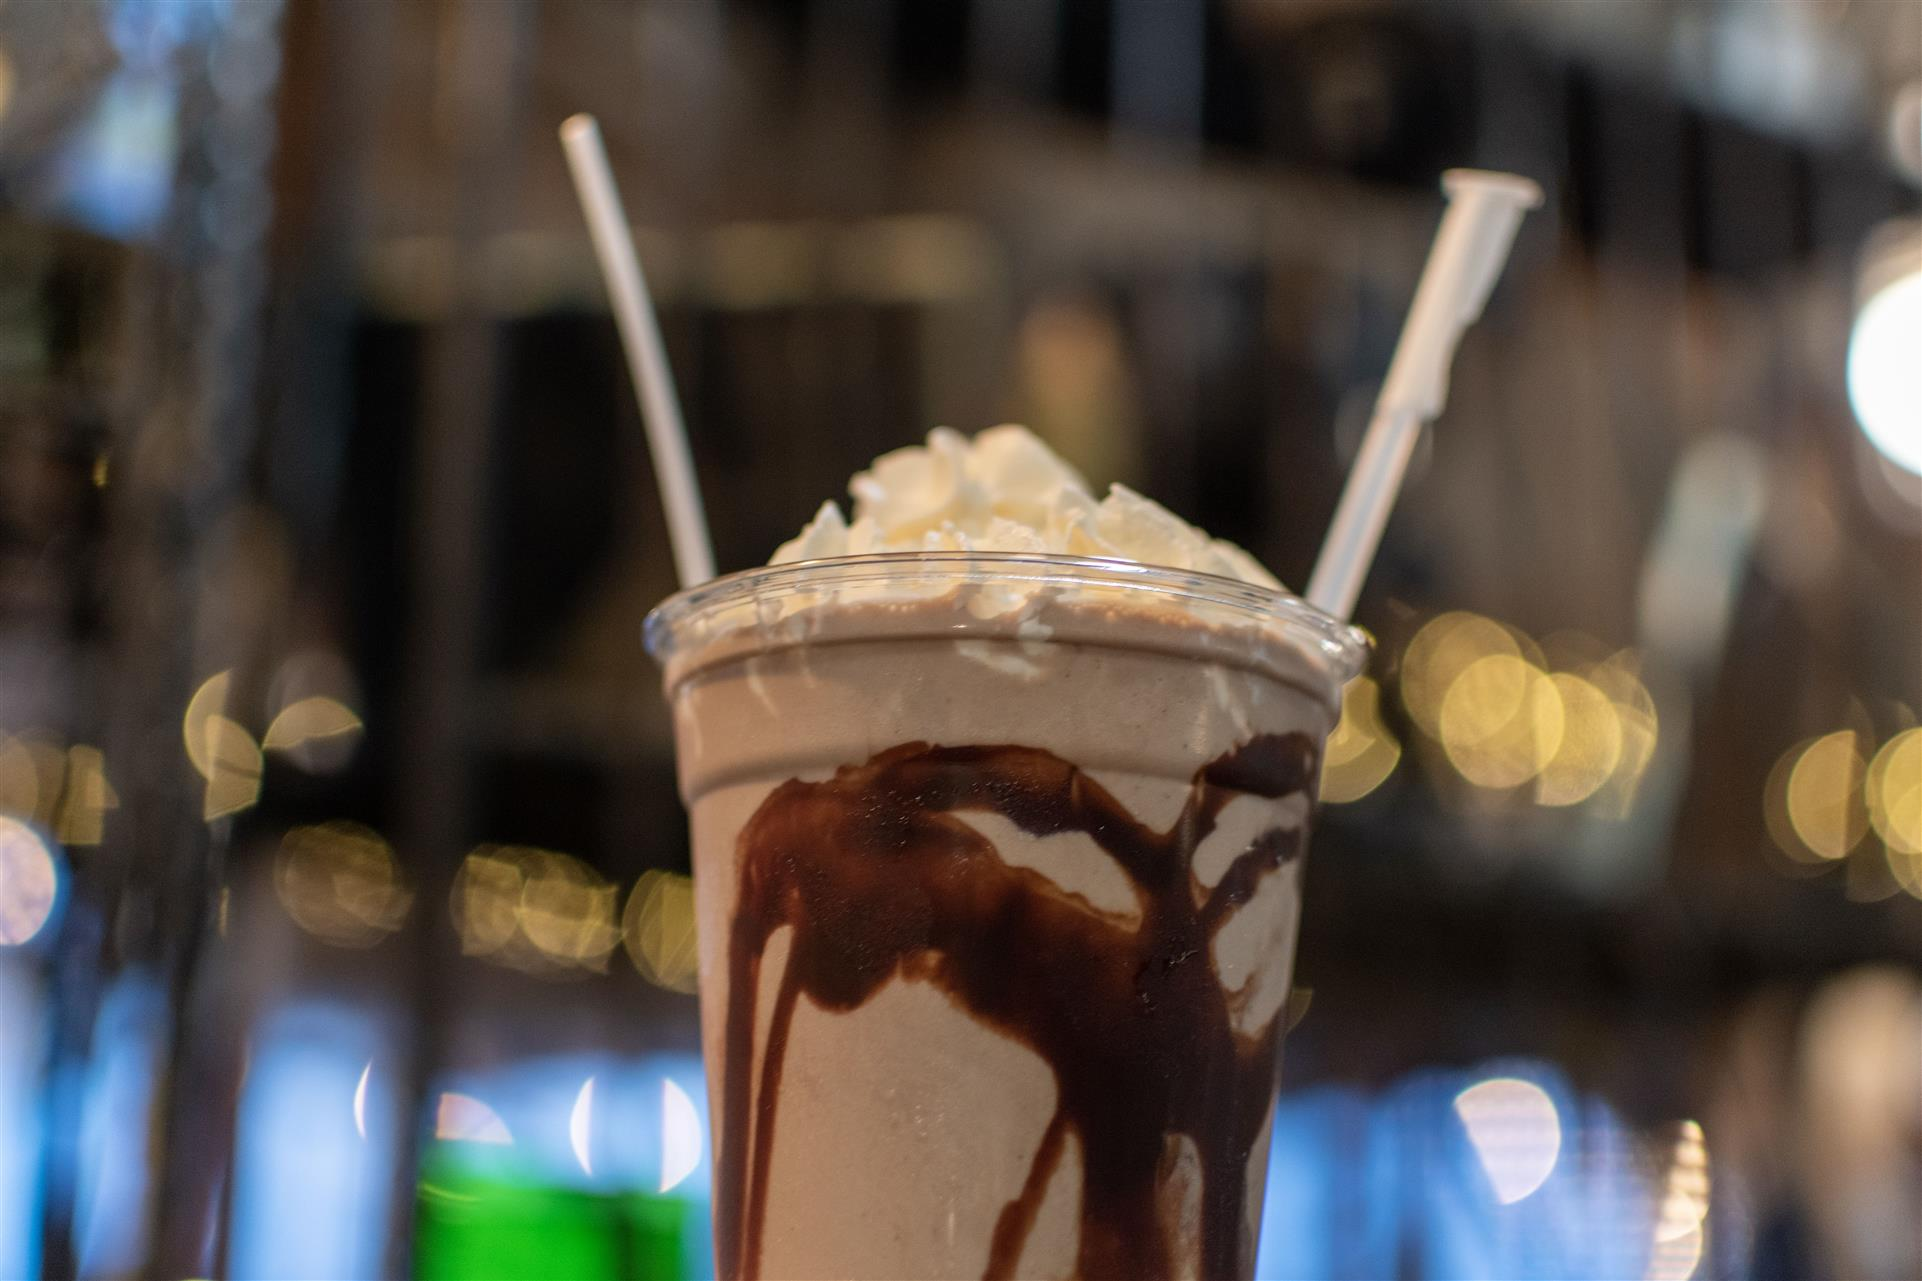 peanutbutter milkshake with choclate syrup and topped with whipped cream